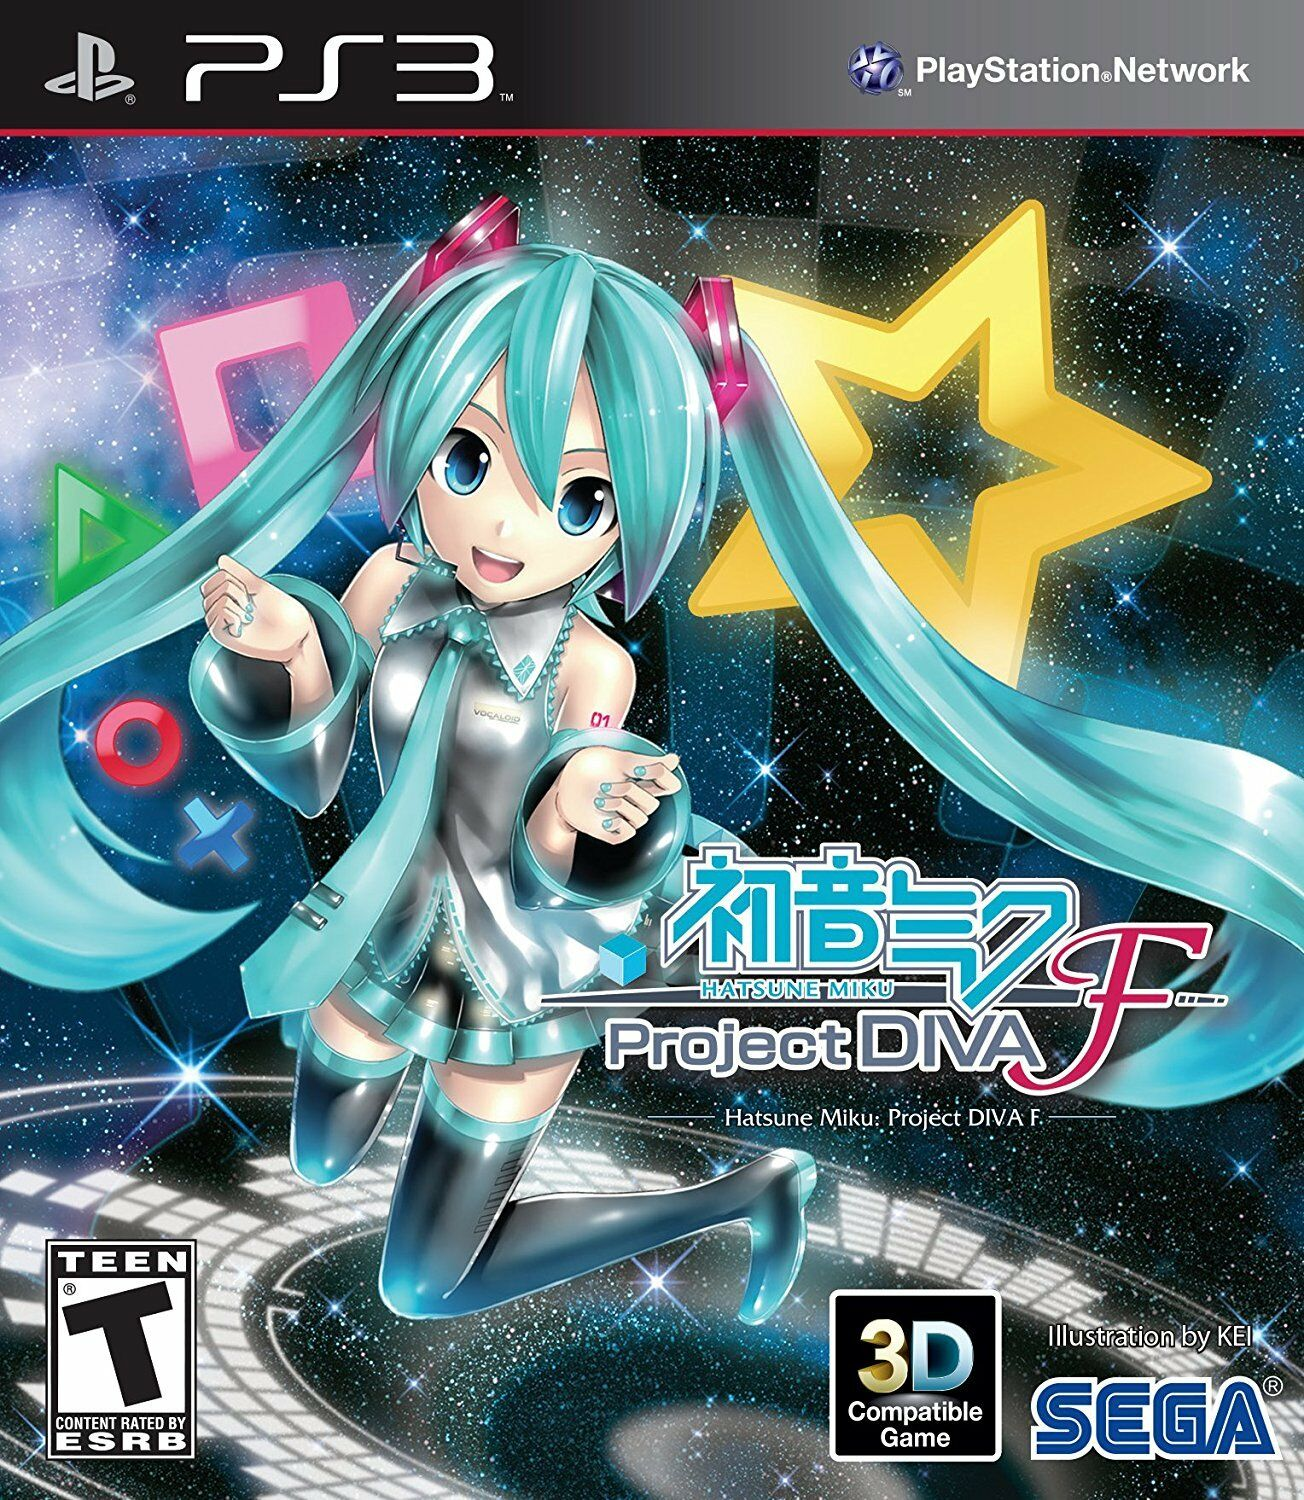 Details about hatsune miku project diva f playstation 3 ps3 anime idol music game new